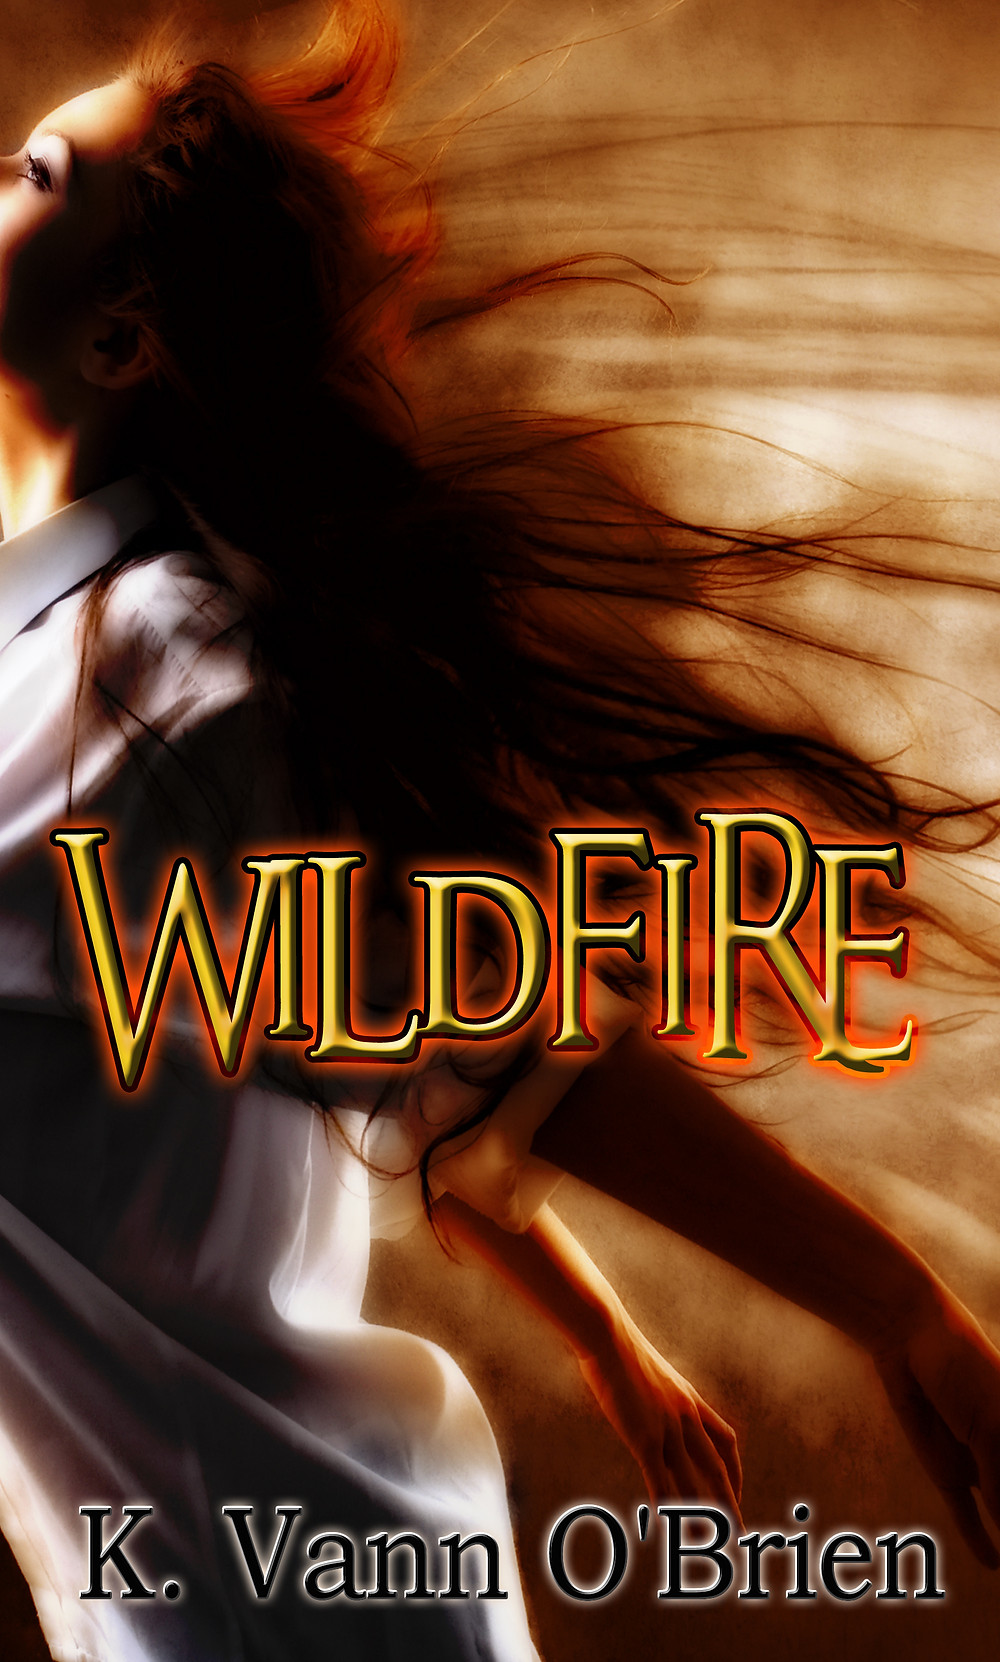 Wildfire+cover+final.jpg